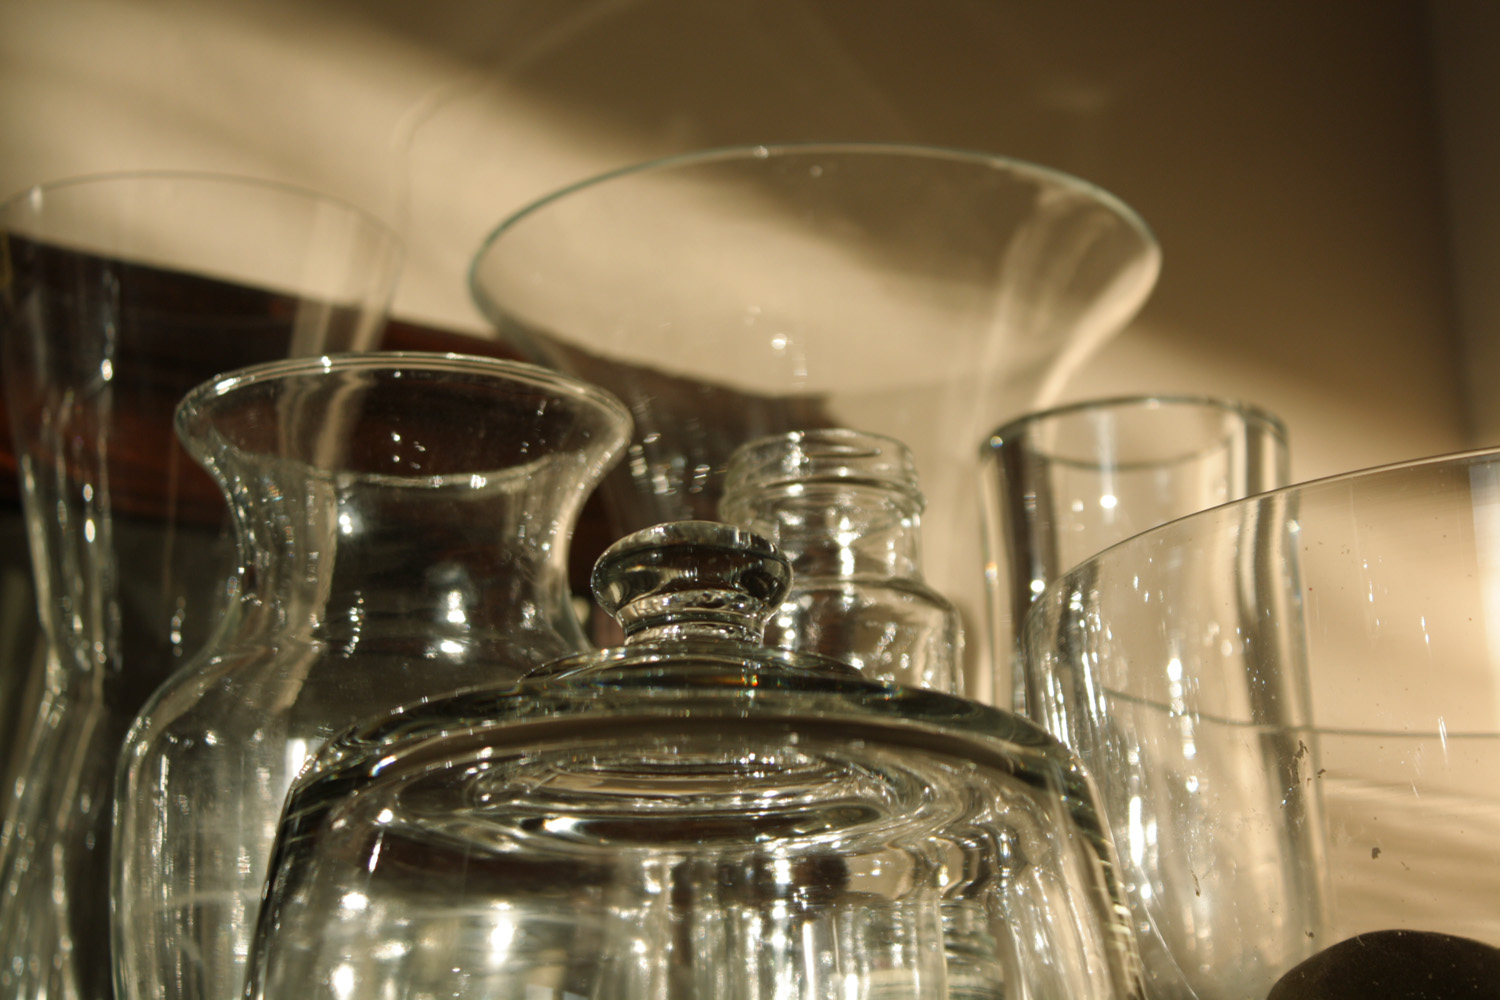 B15_Oct06_Buffet_Glass_01.jpg